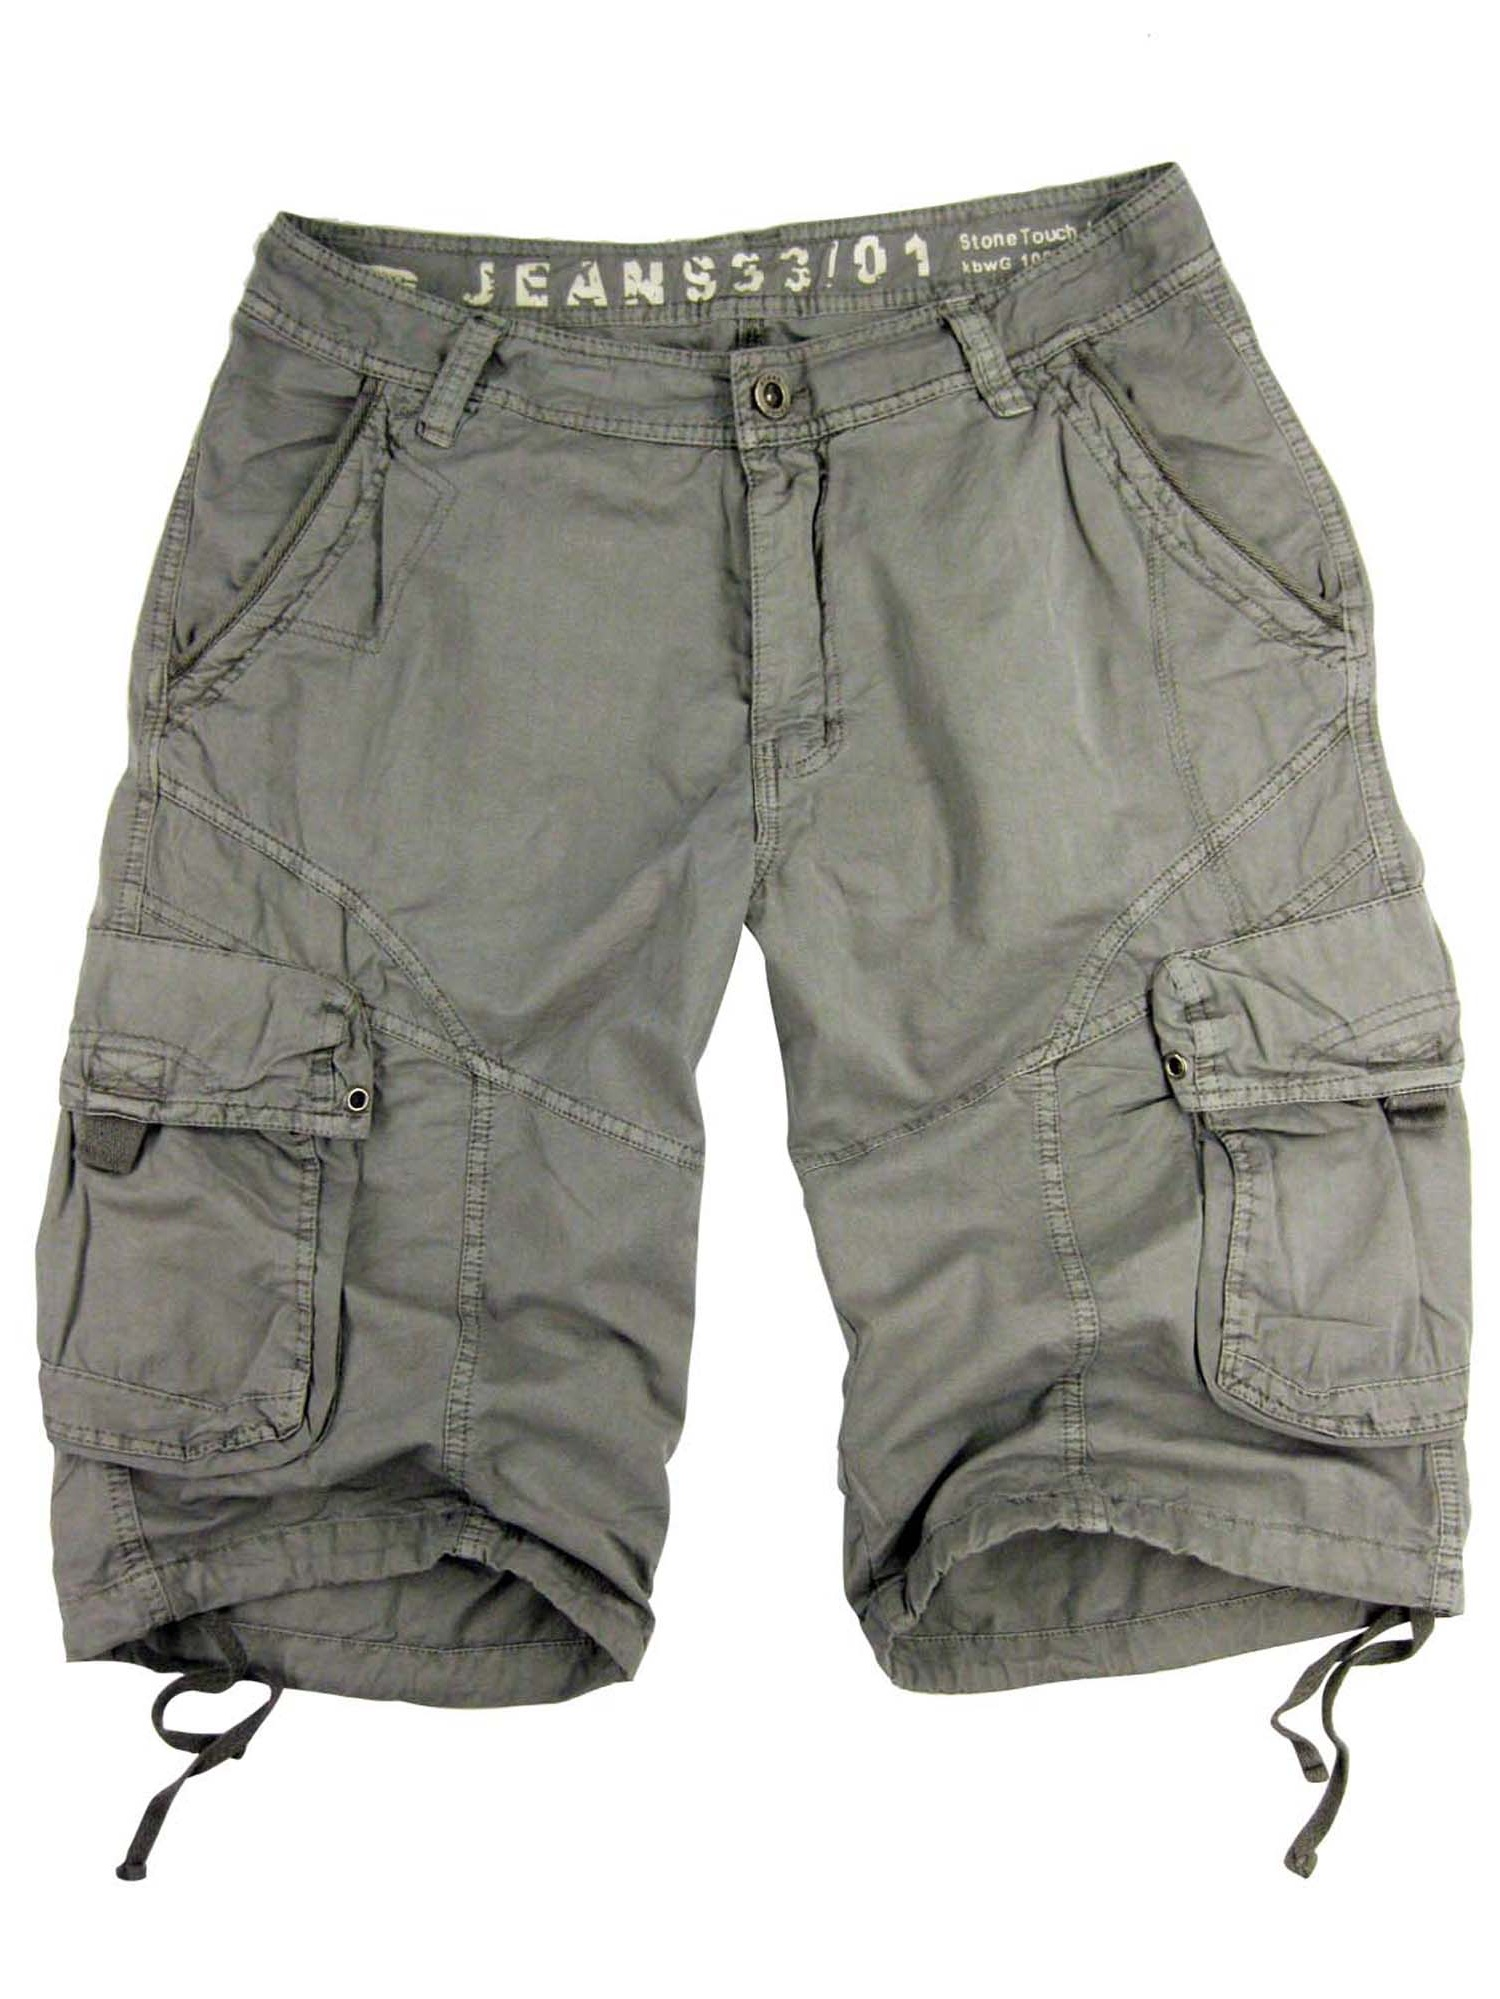 Mens Military-style Cargo Pocket Shorts, Plus size, L.Grey Color, #27sG-L.GY sizes:52